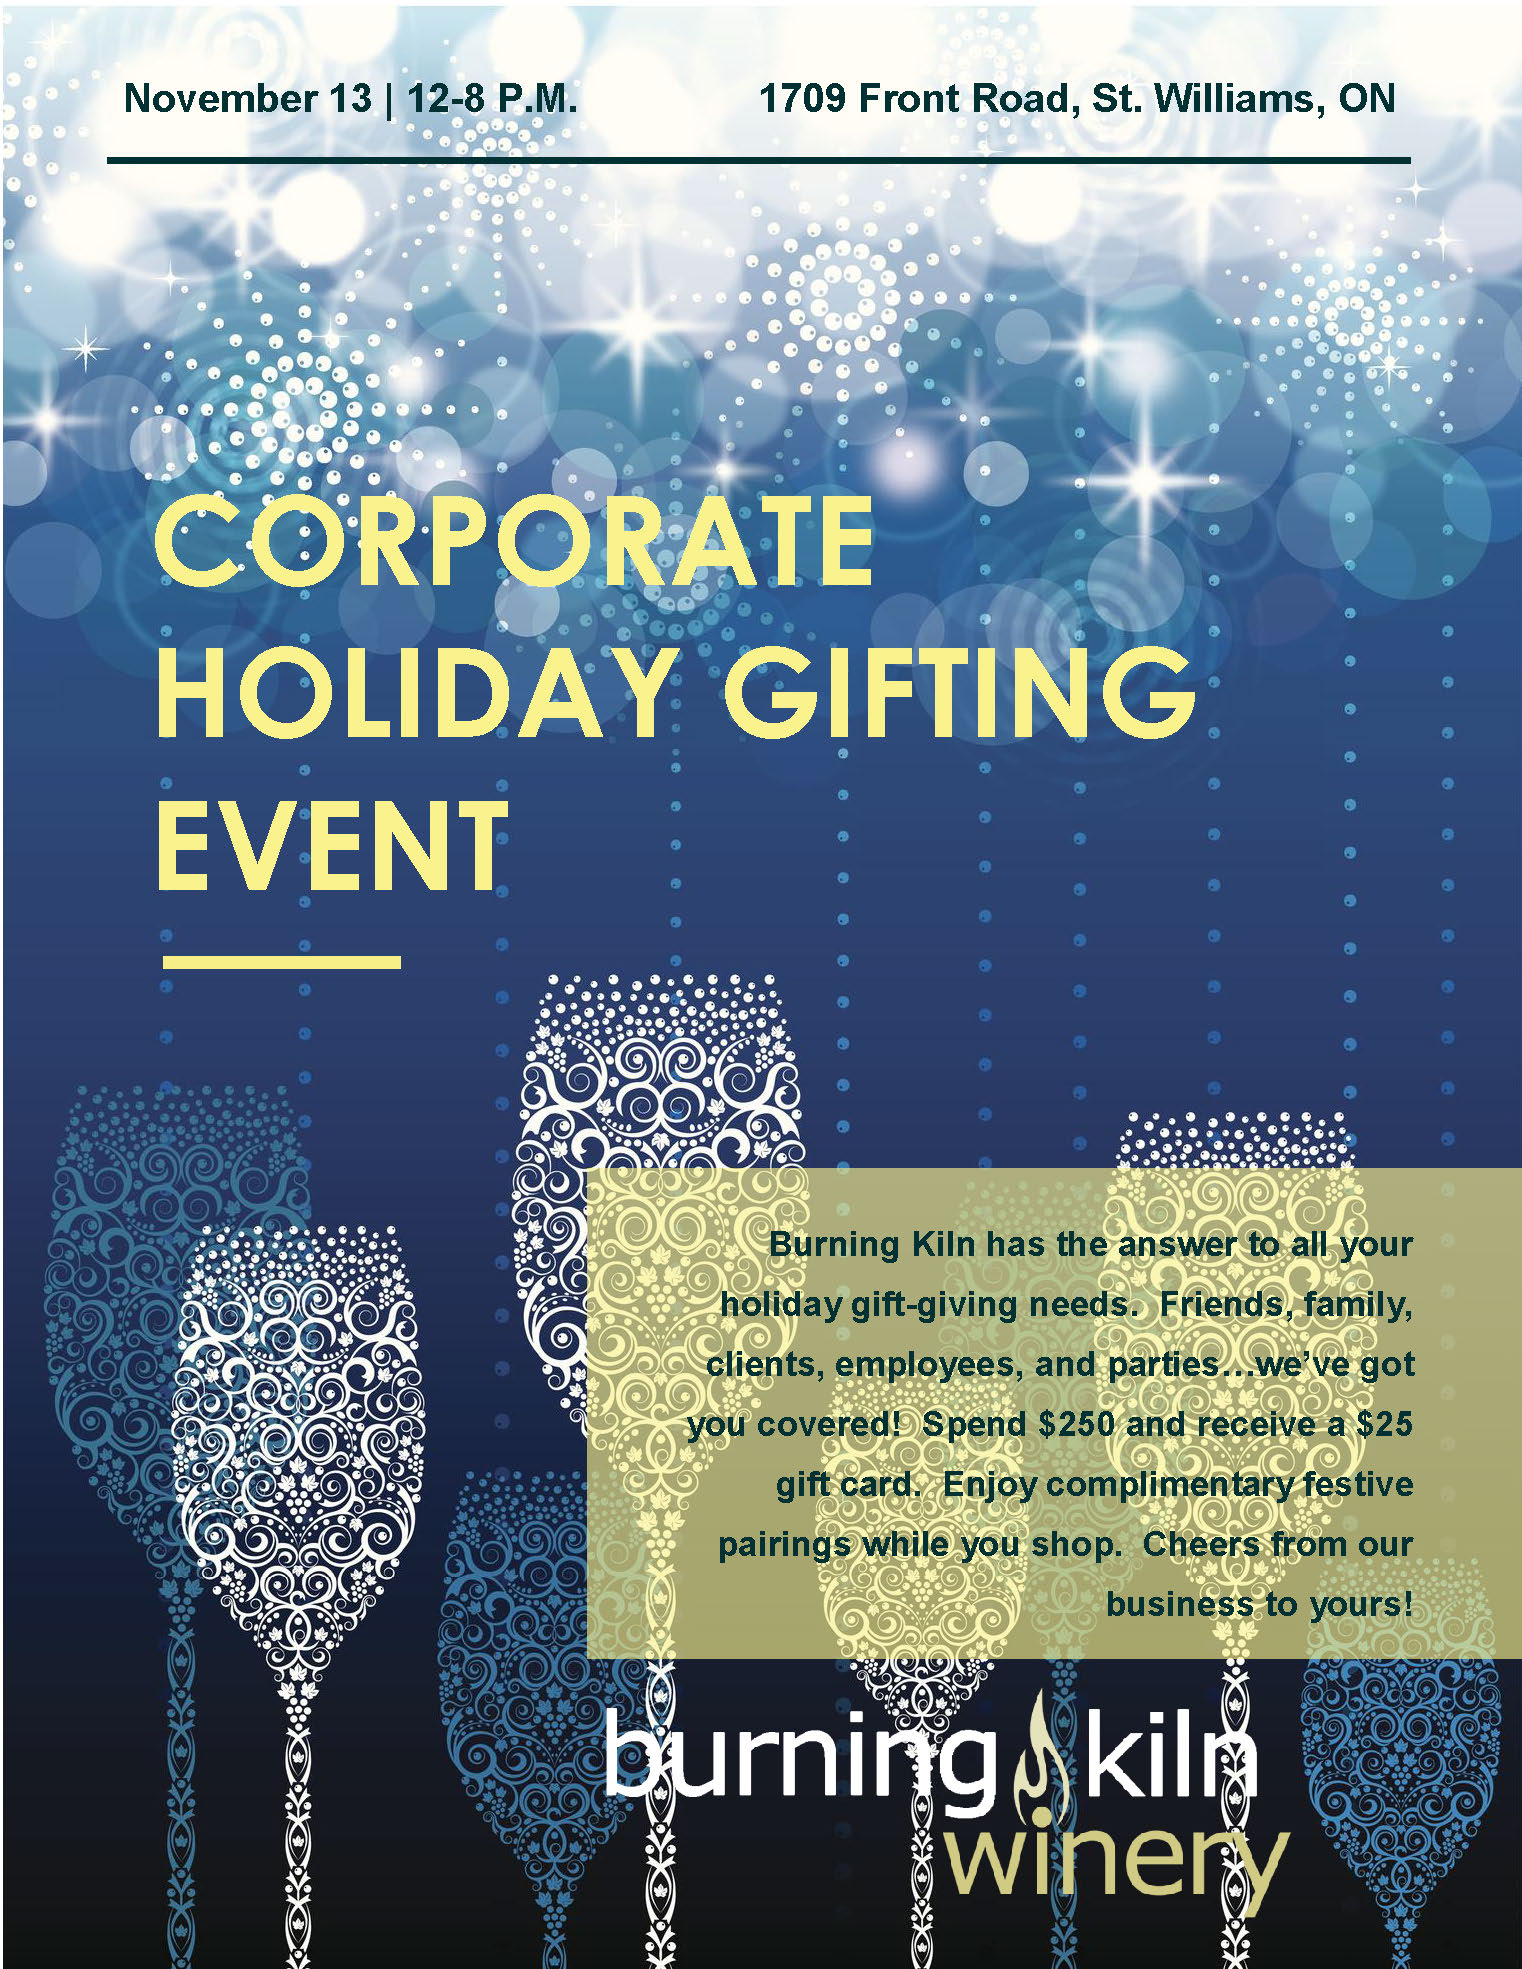 Holiday Gifting Event